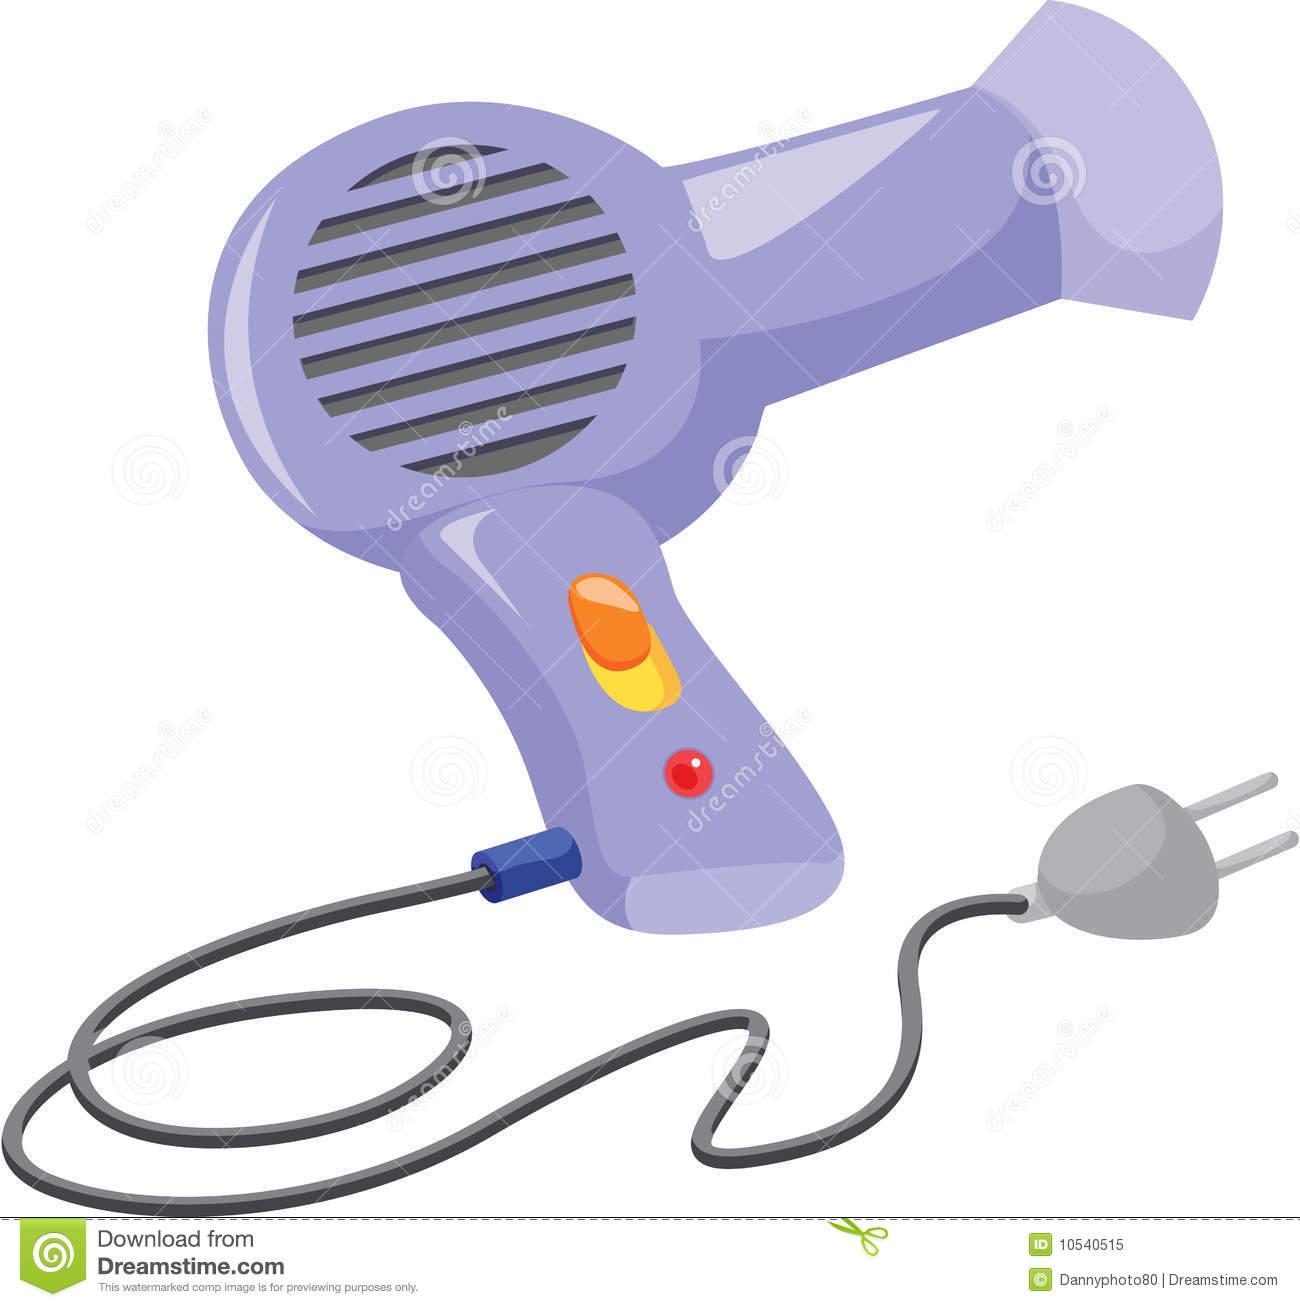 Hair Dryer Royalty Free Stock Photo - Image: 10540515